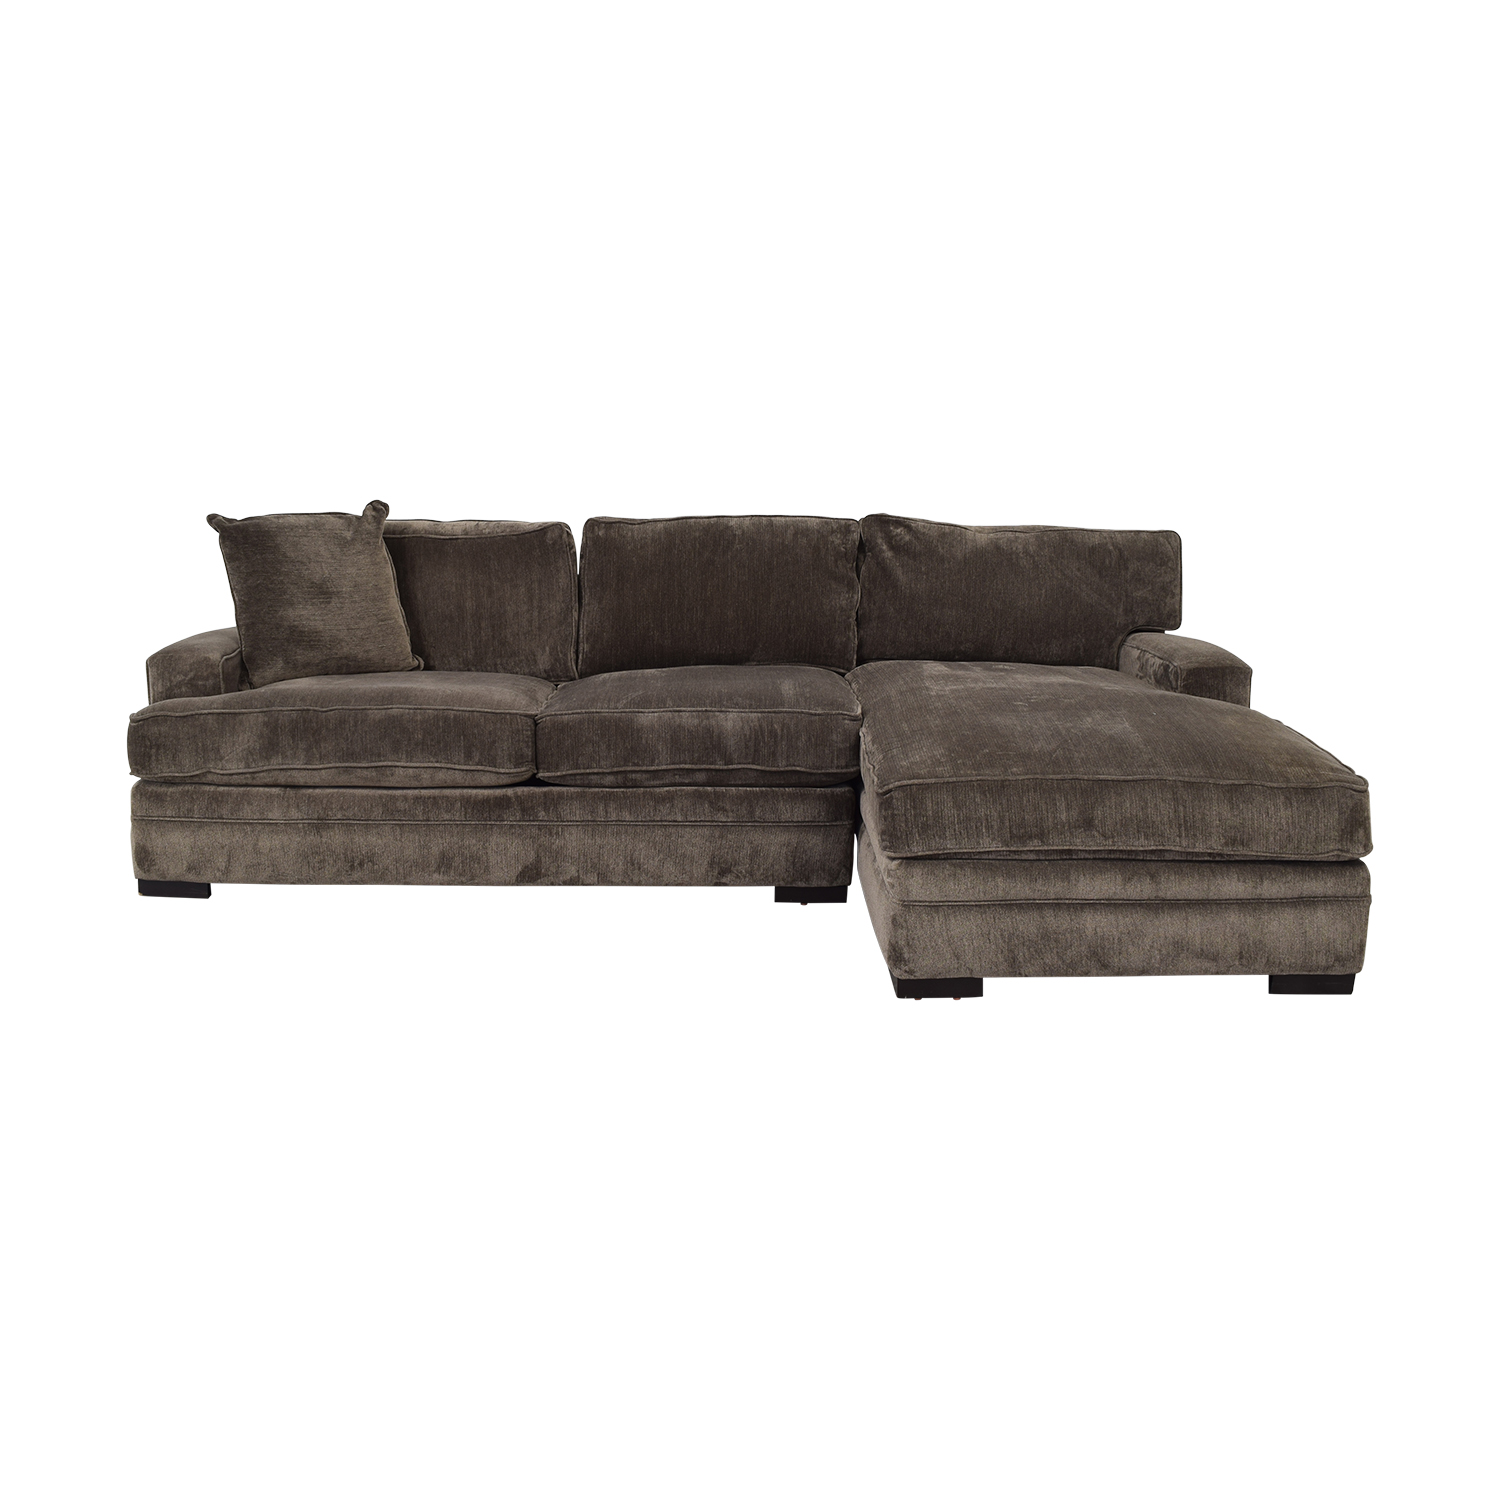 Macy's Macy's Teddy Brown Two Cushion Left Arm Sofa